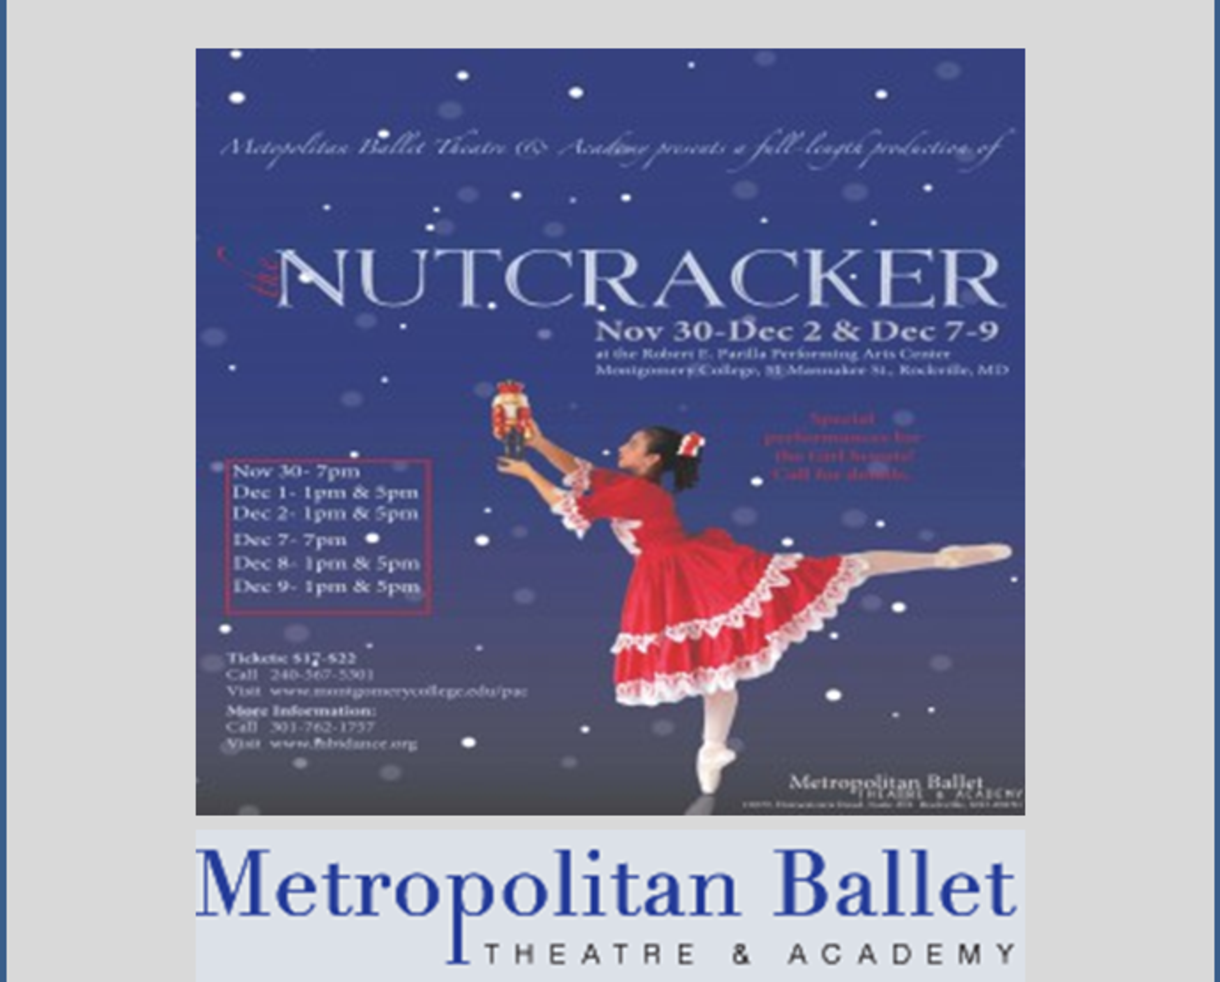 $12 for THE NUTCRACKER Ticket presented by Metropolitan Ballet Theatre - Rockville ($8 Off!)